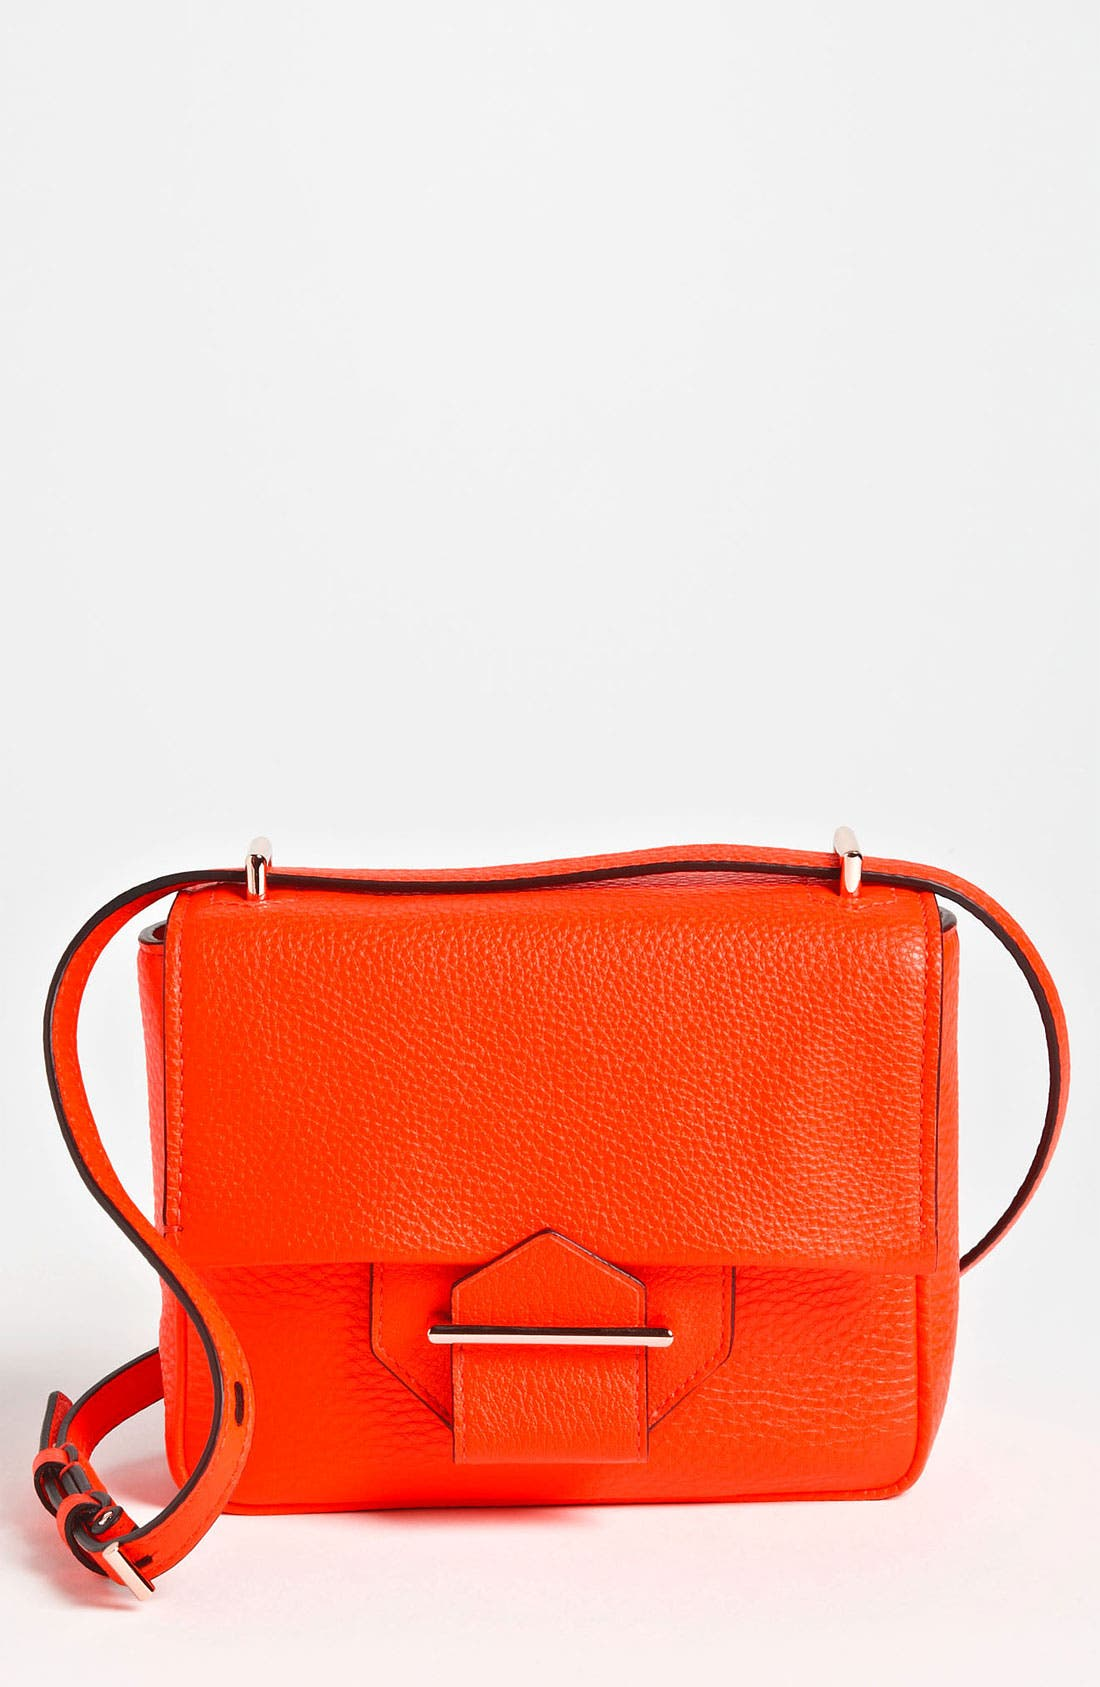 Main Image - Reed Krakoff 'Standard - Mini' Leather Shoulder Bag